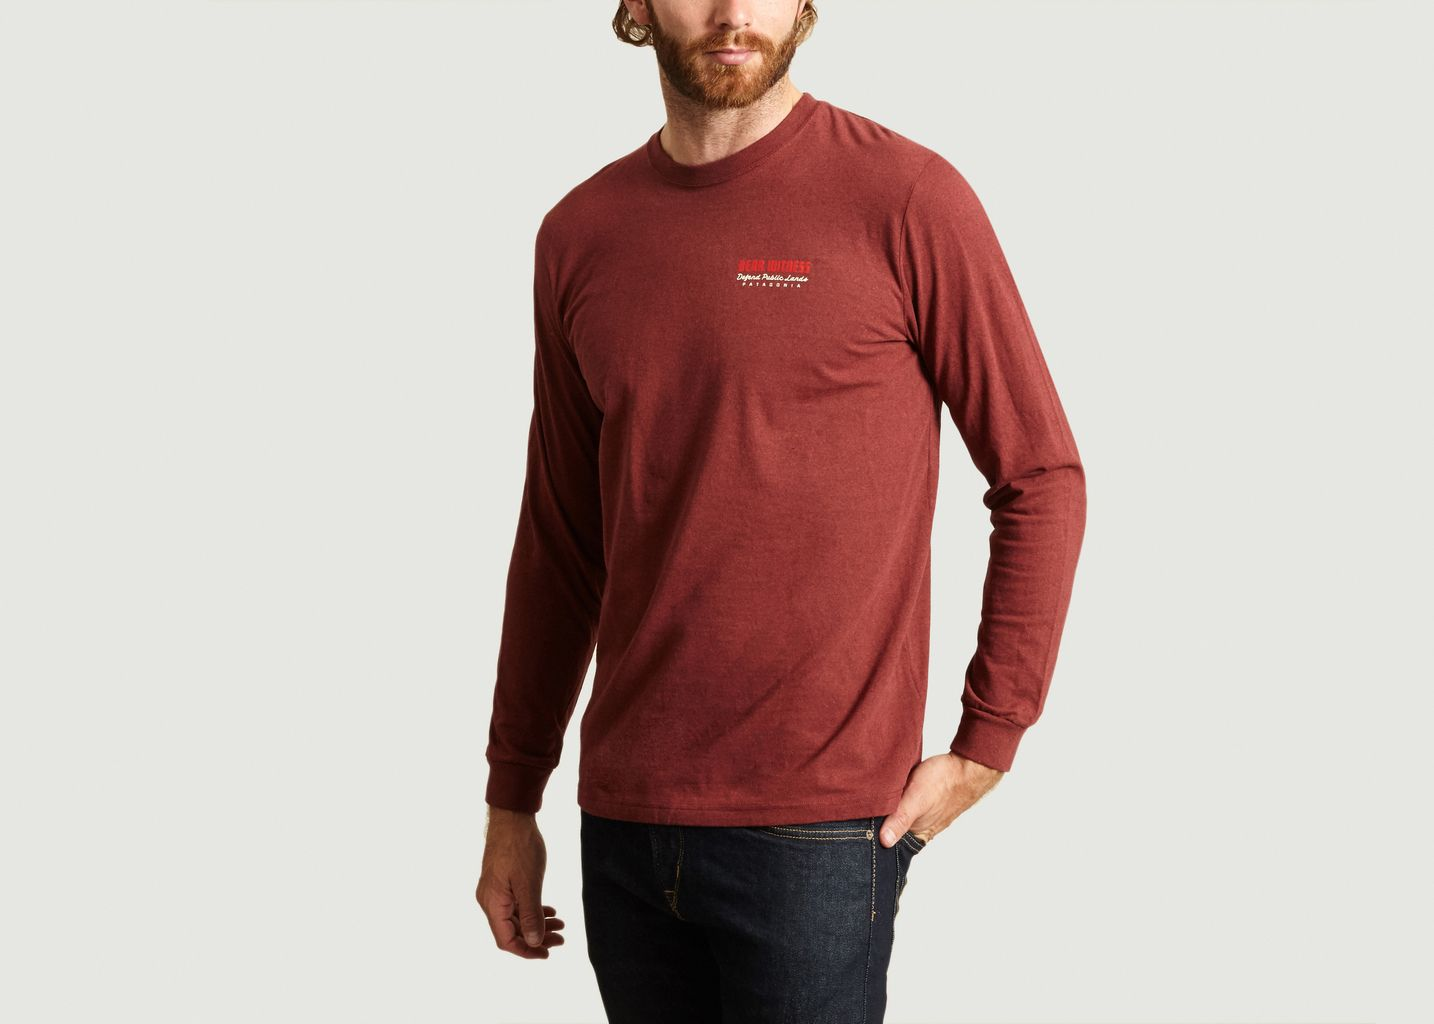 T-Shirt See & Believe - Patagonia